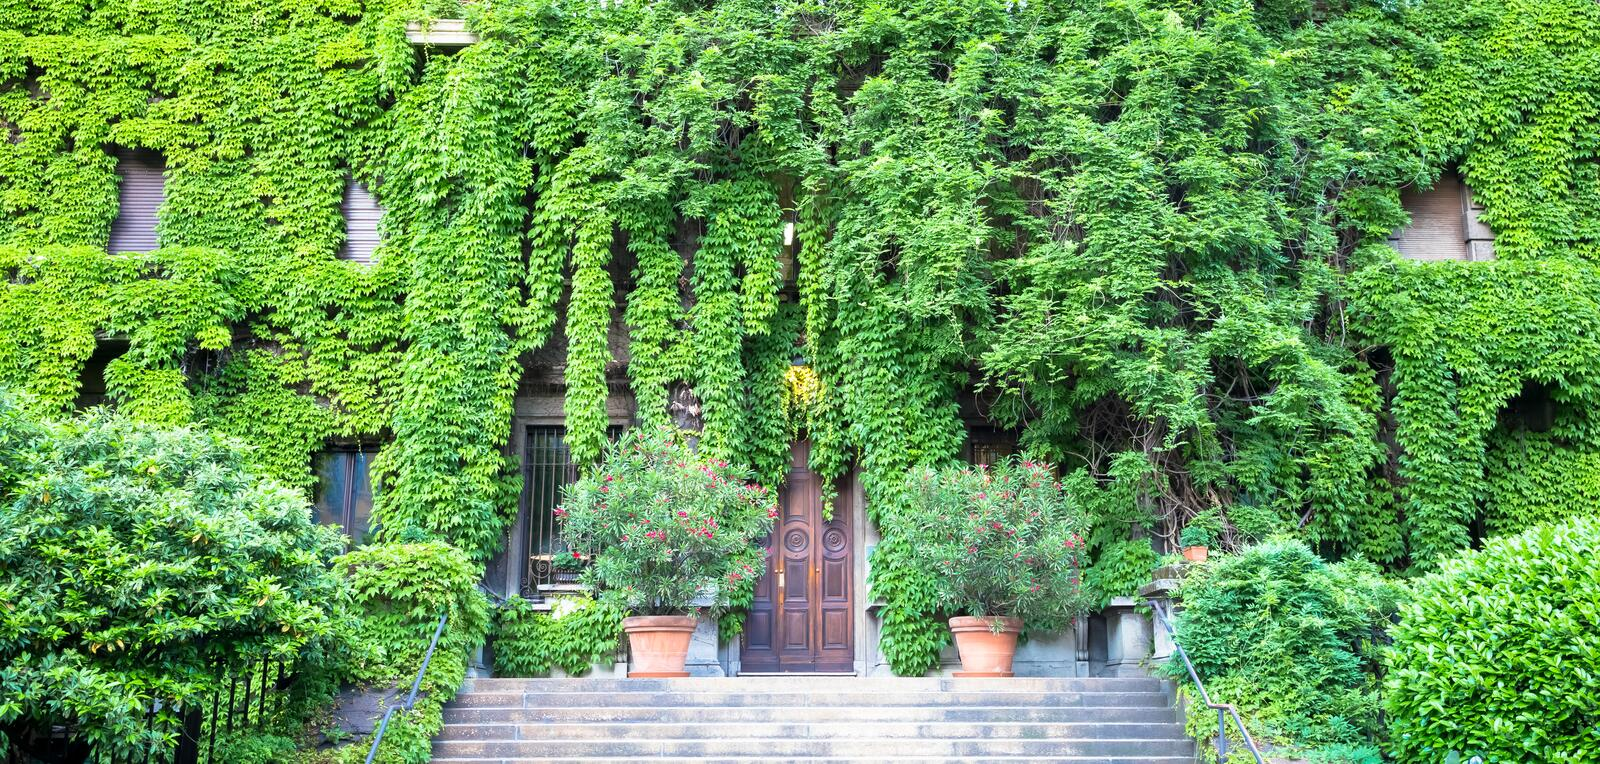 Green Real Estate. Integration of nature and real estate on this old Italian building royalty free stock image